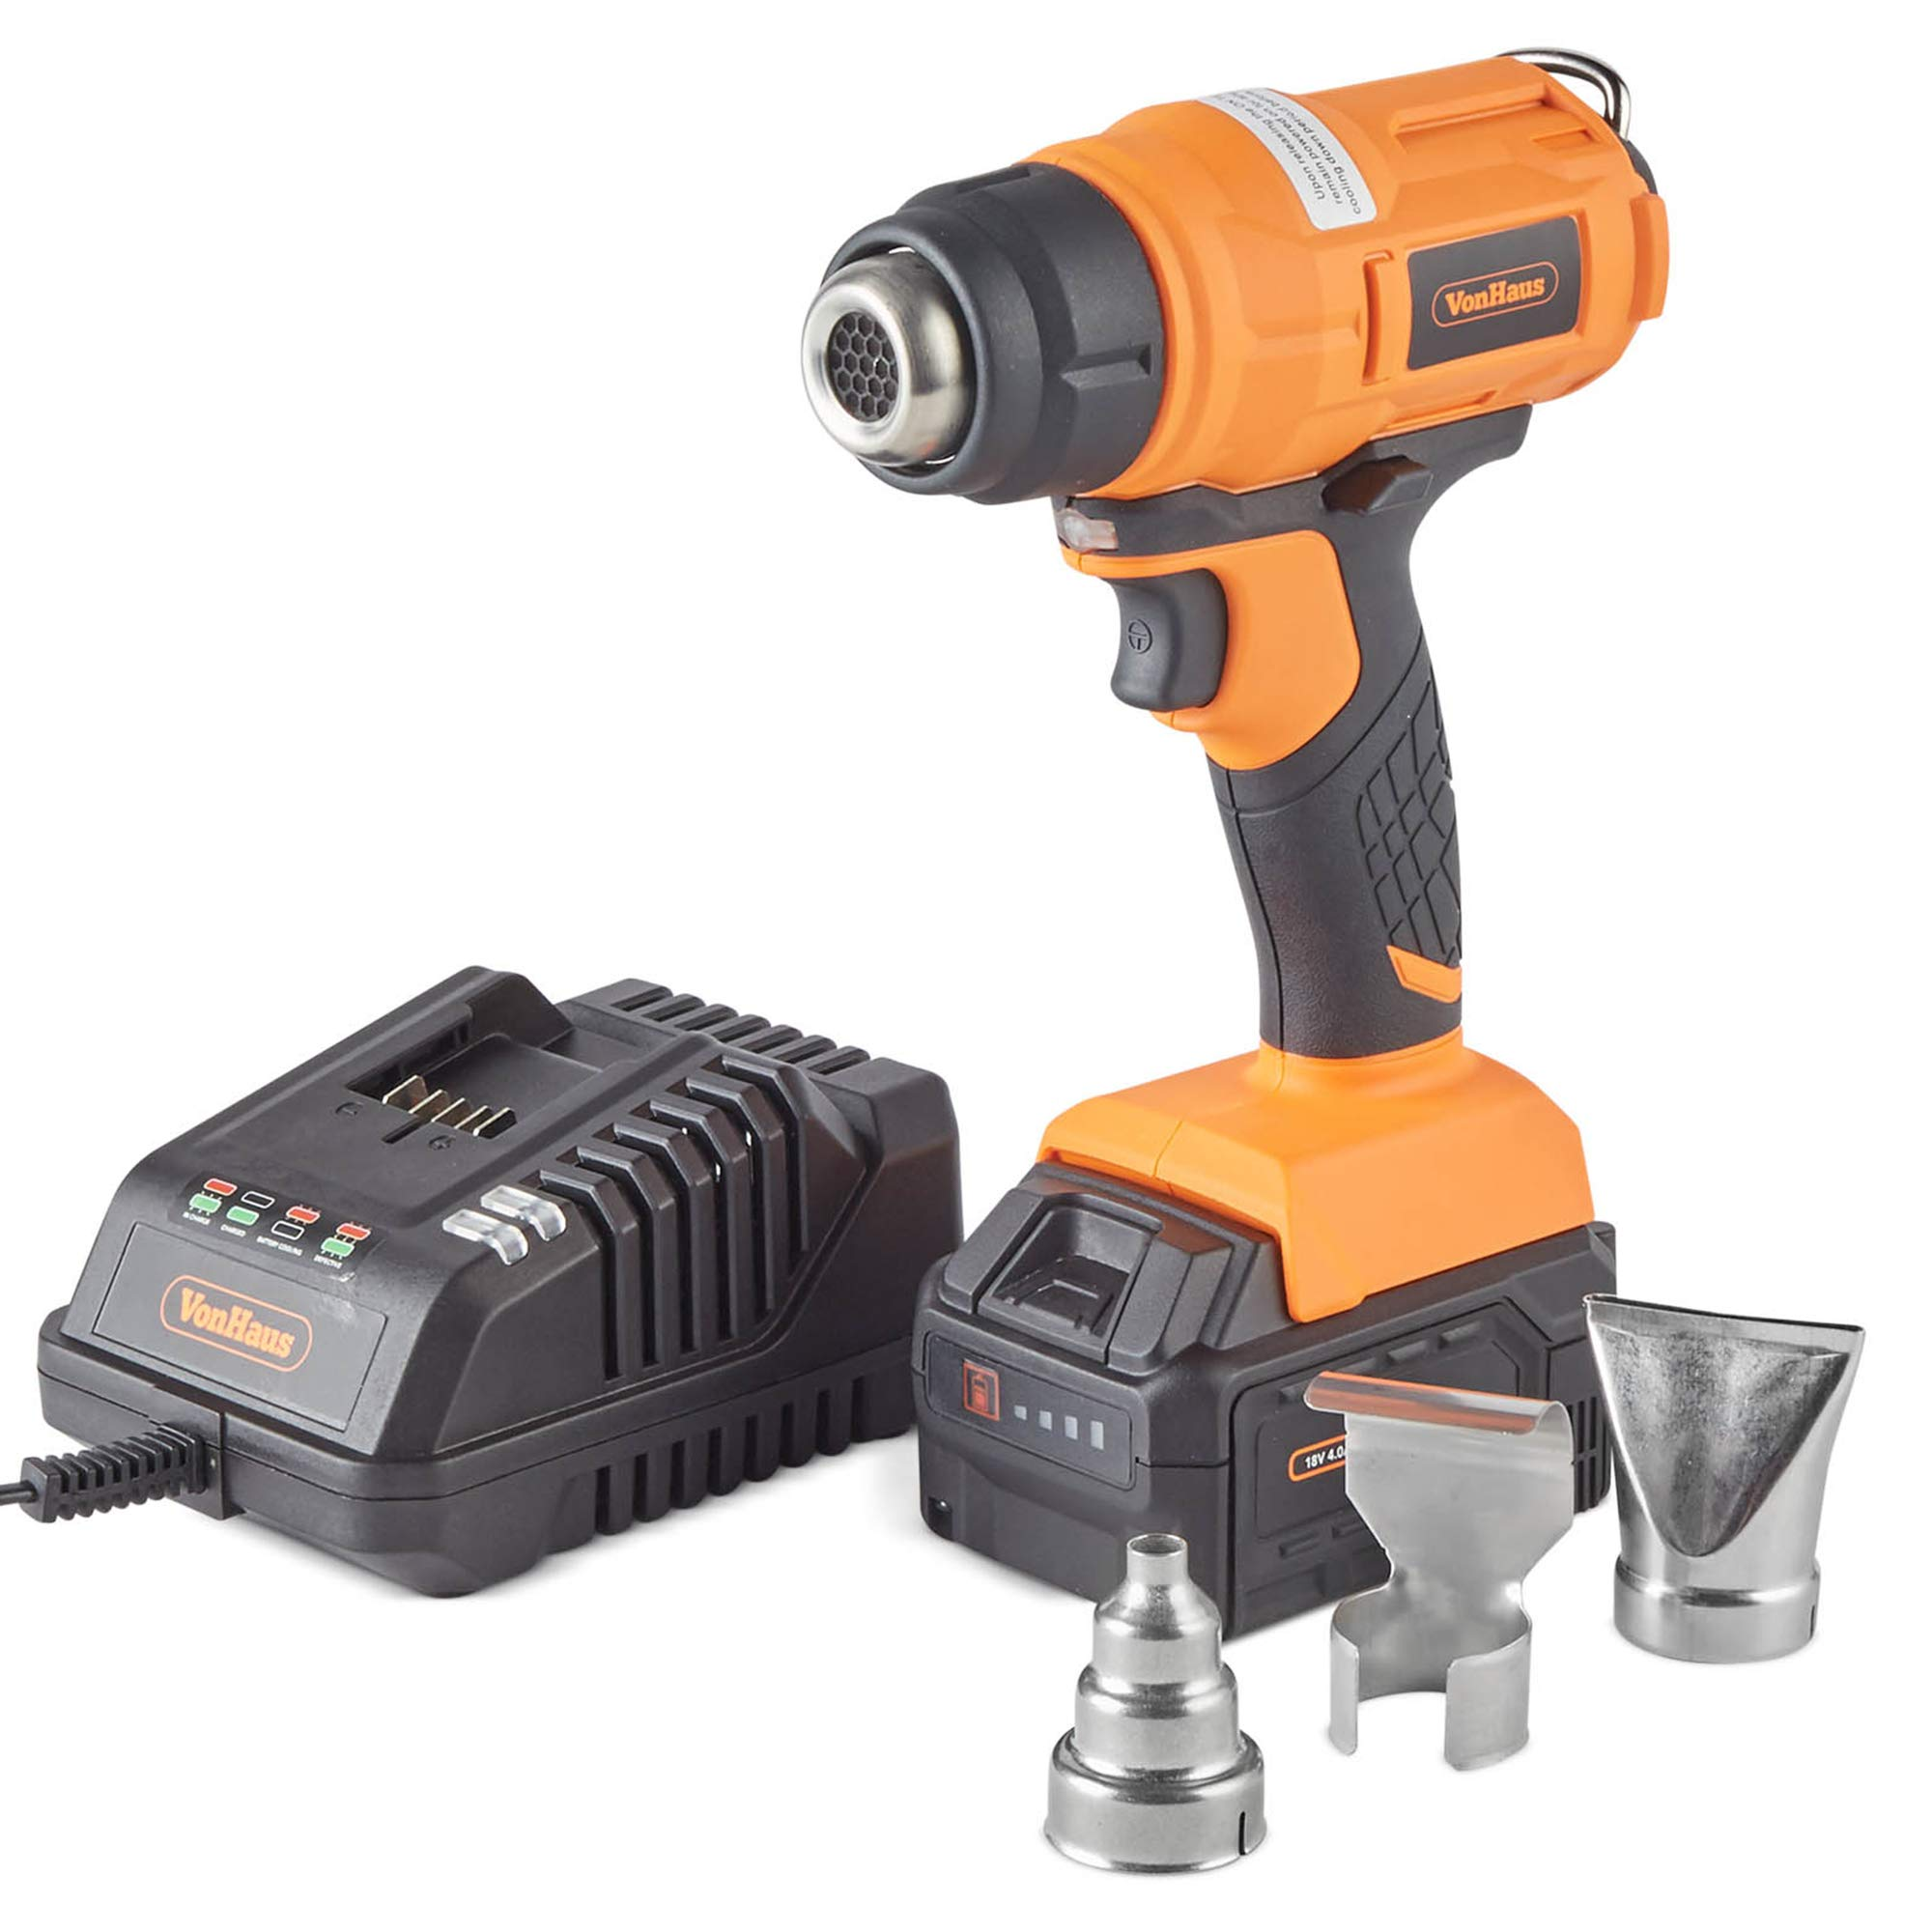 VonHaus 18V Cordless Heat Gun Professional Hot Air Gun with LED Light, Lithium-ion Battery, Reflector Nozzle Concentrator Nozzle Air Spreader Nozzle for Soldering Pipes, Shrinking